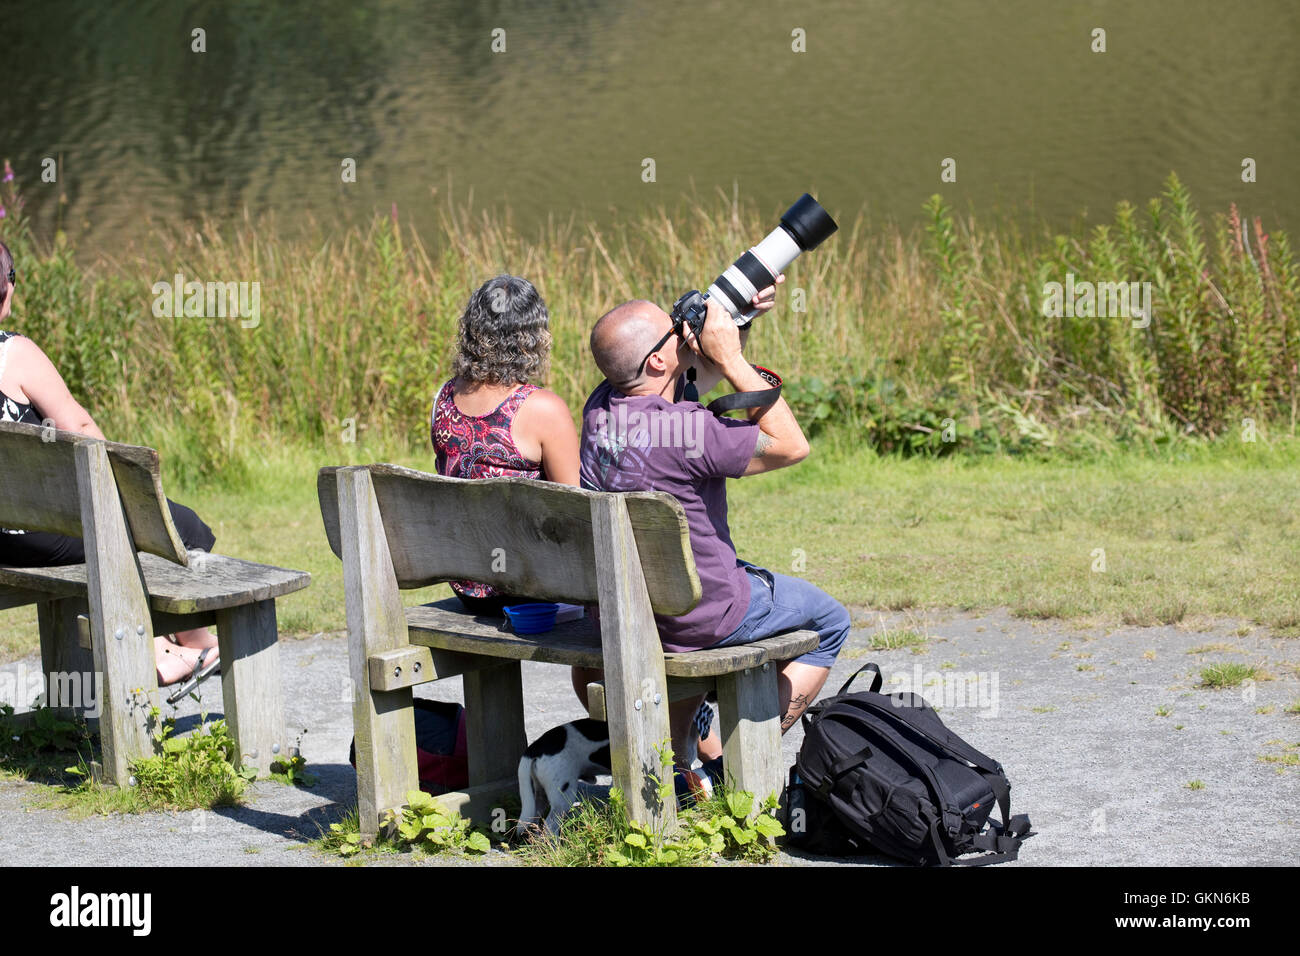 Woman and man sitting photographing birds with big telephoto lens Bwlch Nant Yr Arian Visitor Centre Ceredigion - Stock Image